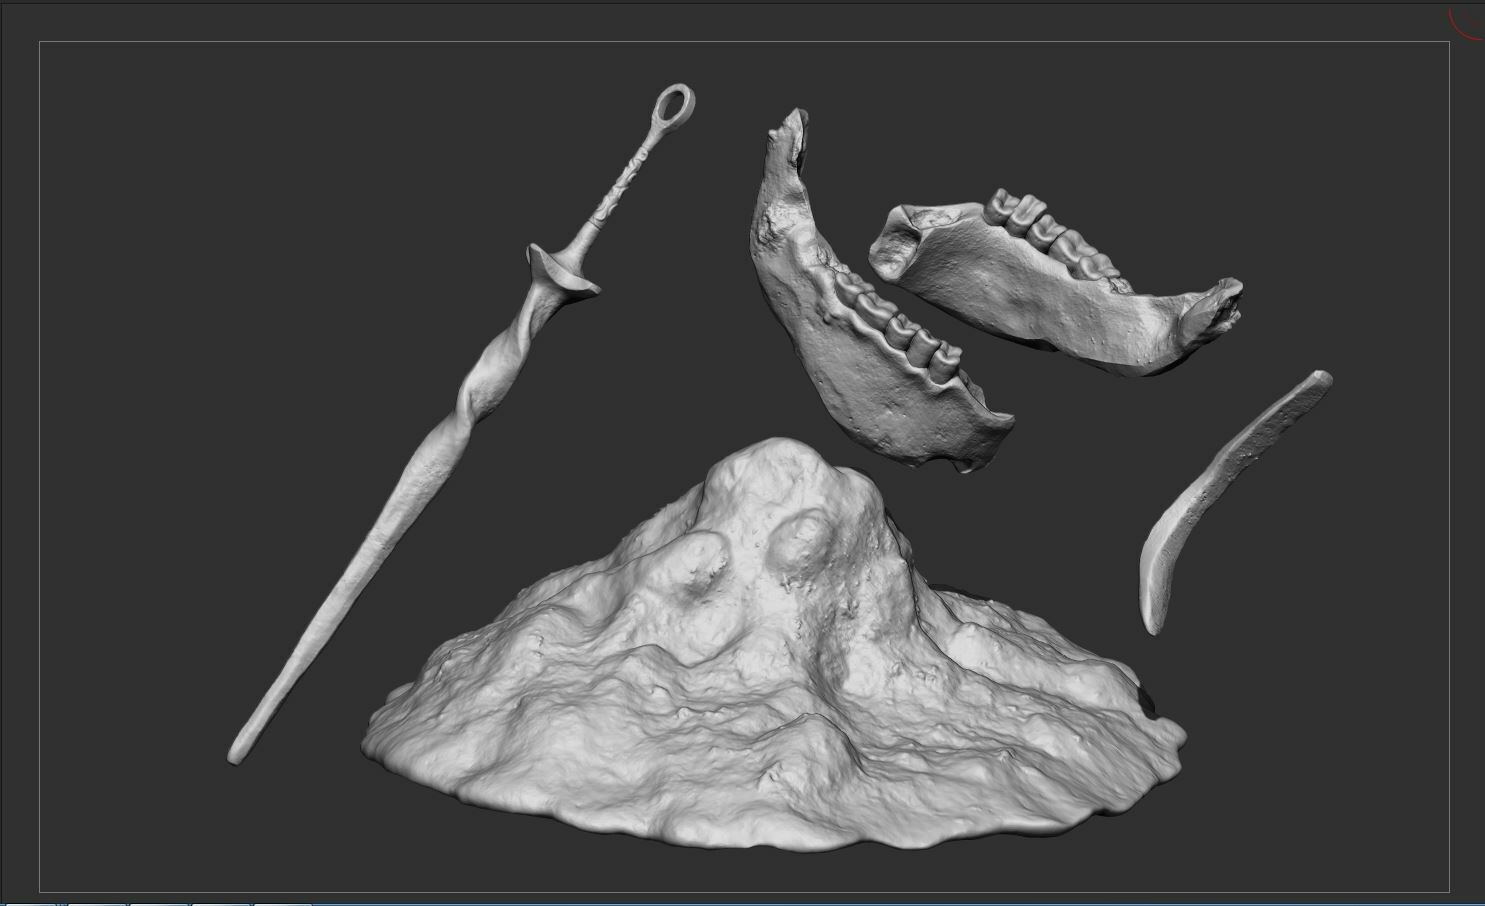 Zbrush Hi-Poly of the Environment